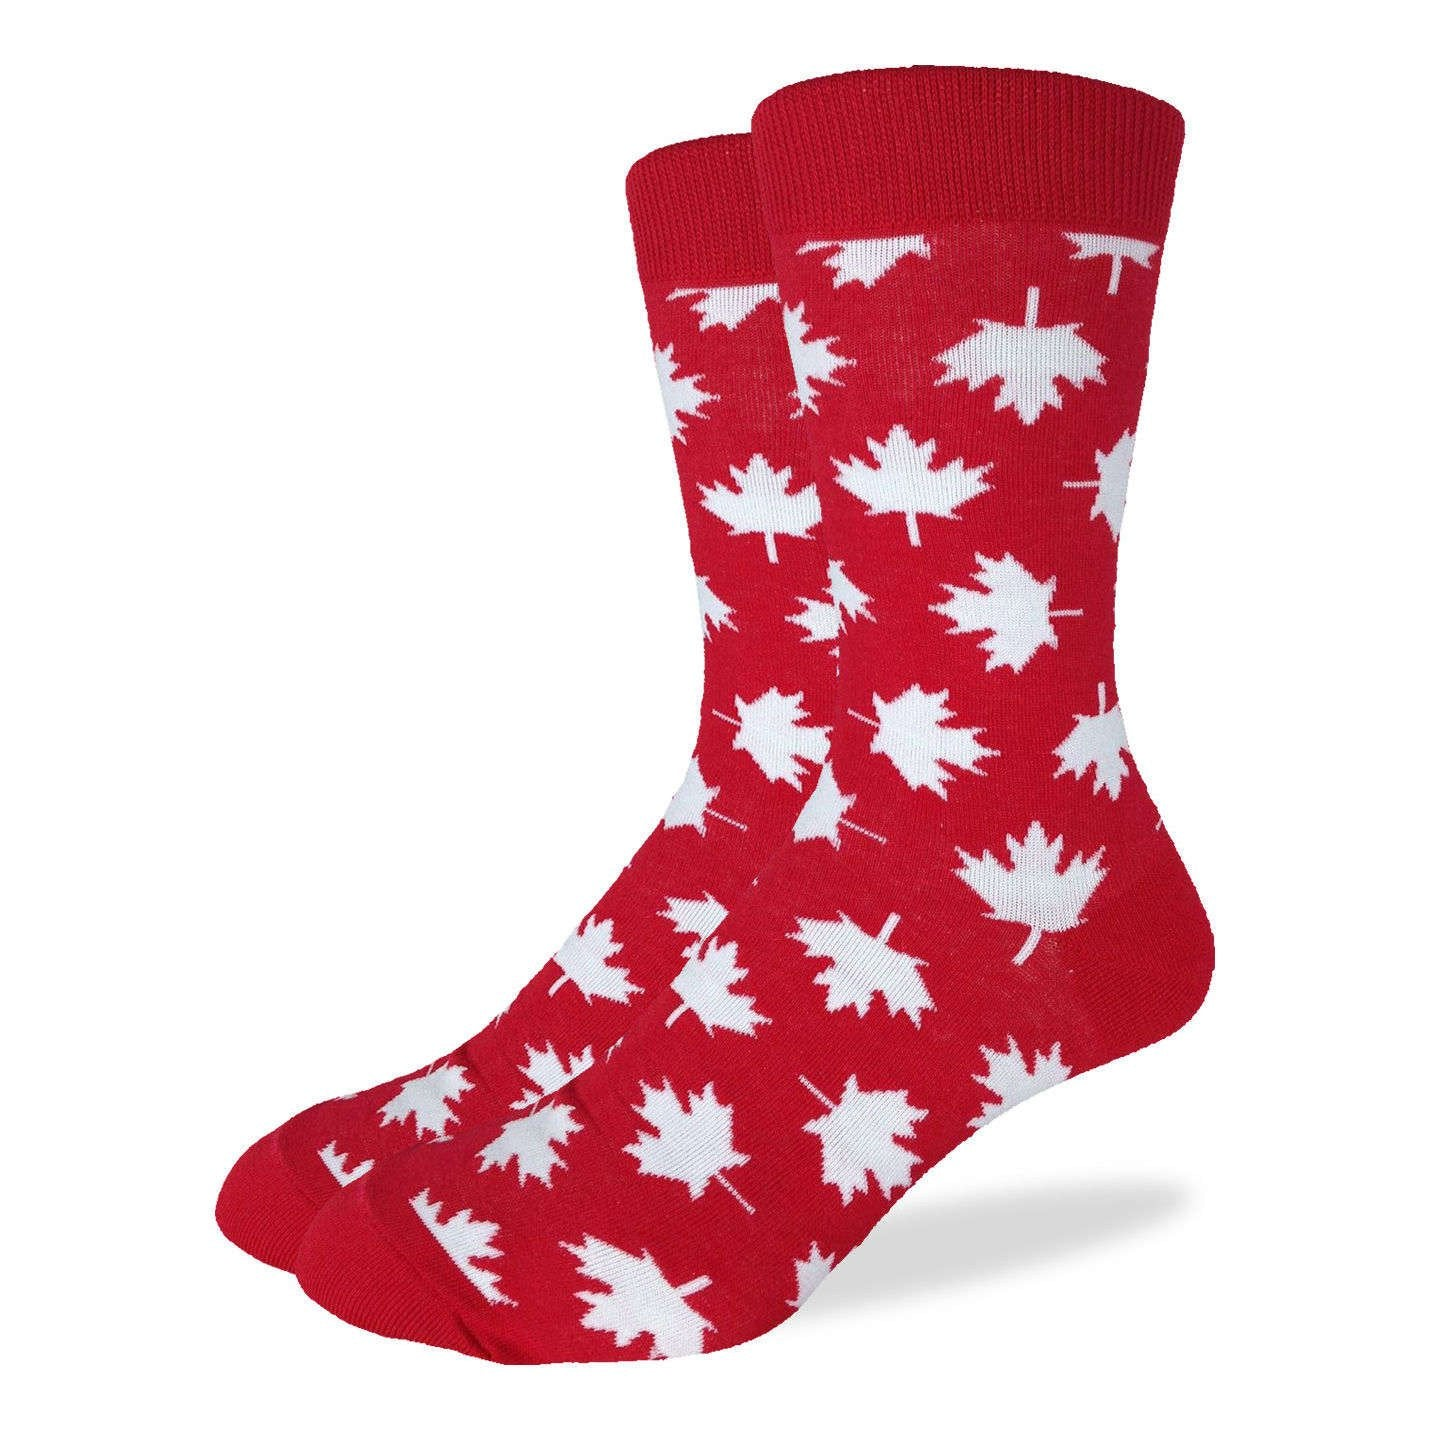 Men's Canada Maple Leaf Socks - Good Luck Sock